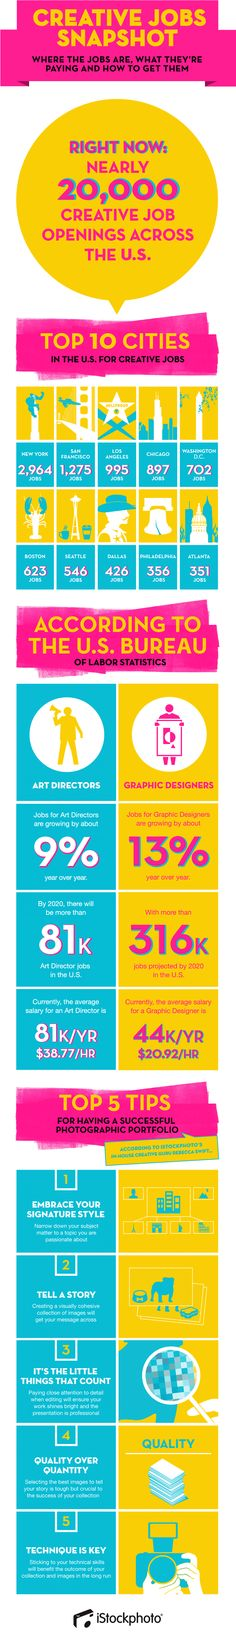 You're Saving the World One #Design at a Time - Creative Jobs Market [INFOGRAPHIC]